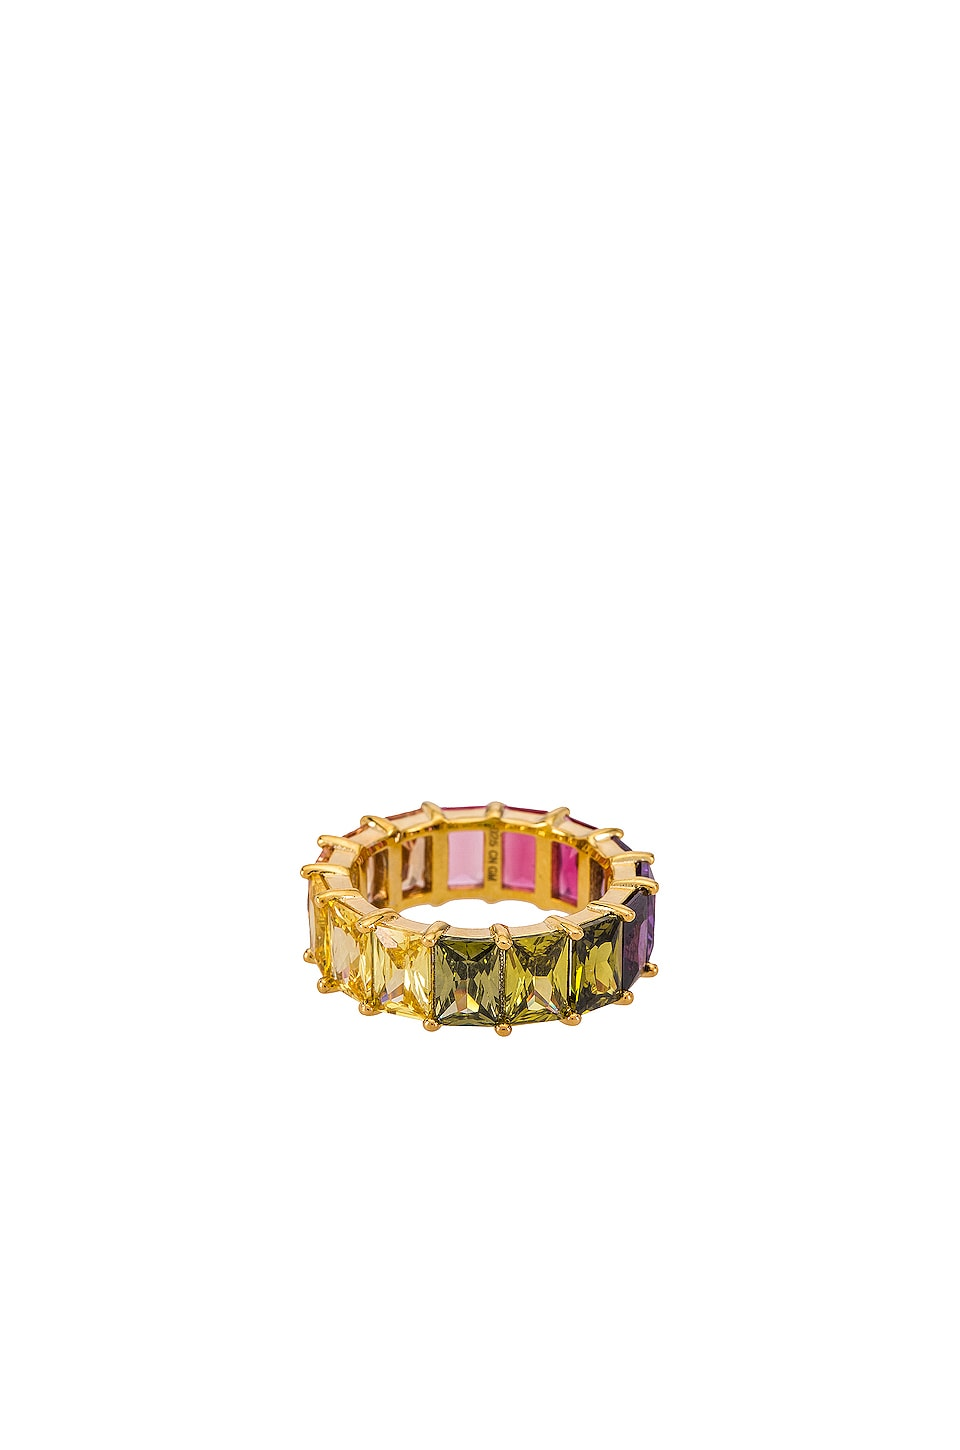 The M Jewelers NY The Rainbow Ring in Gold